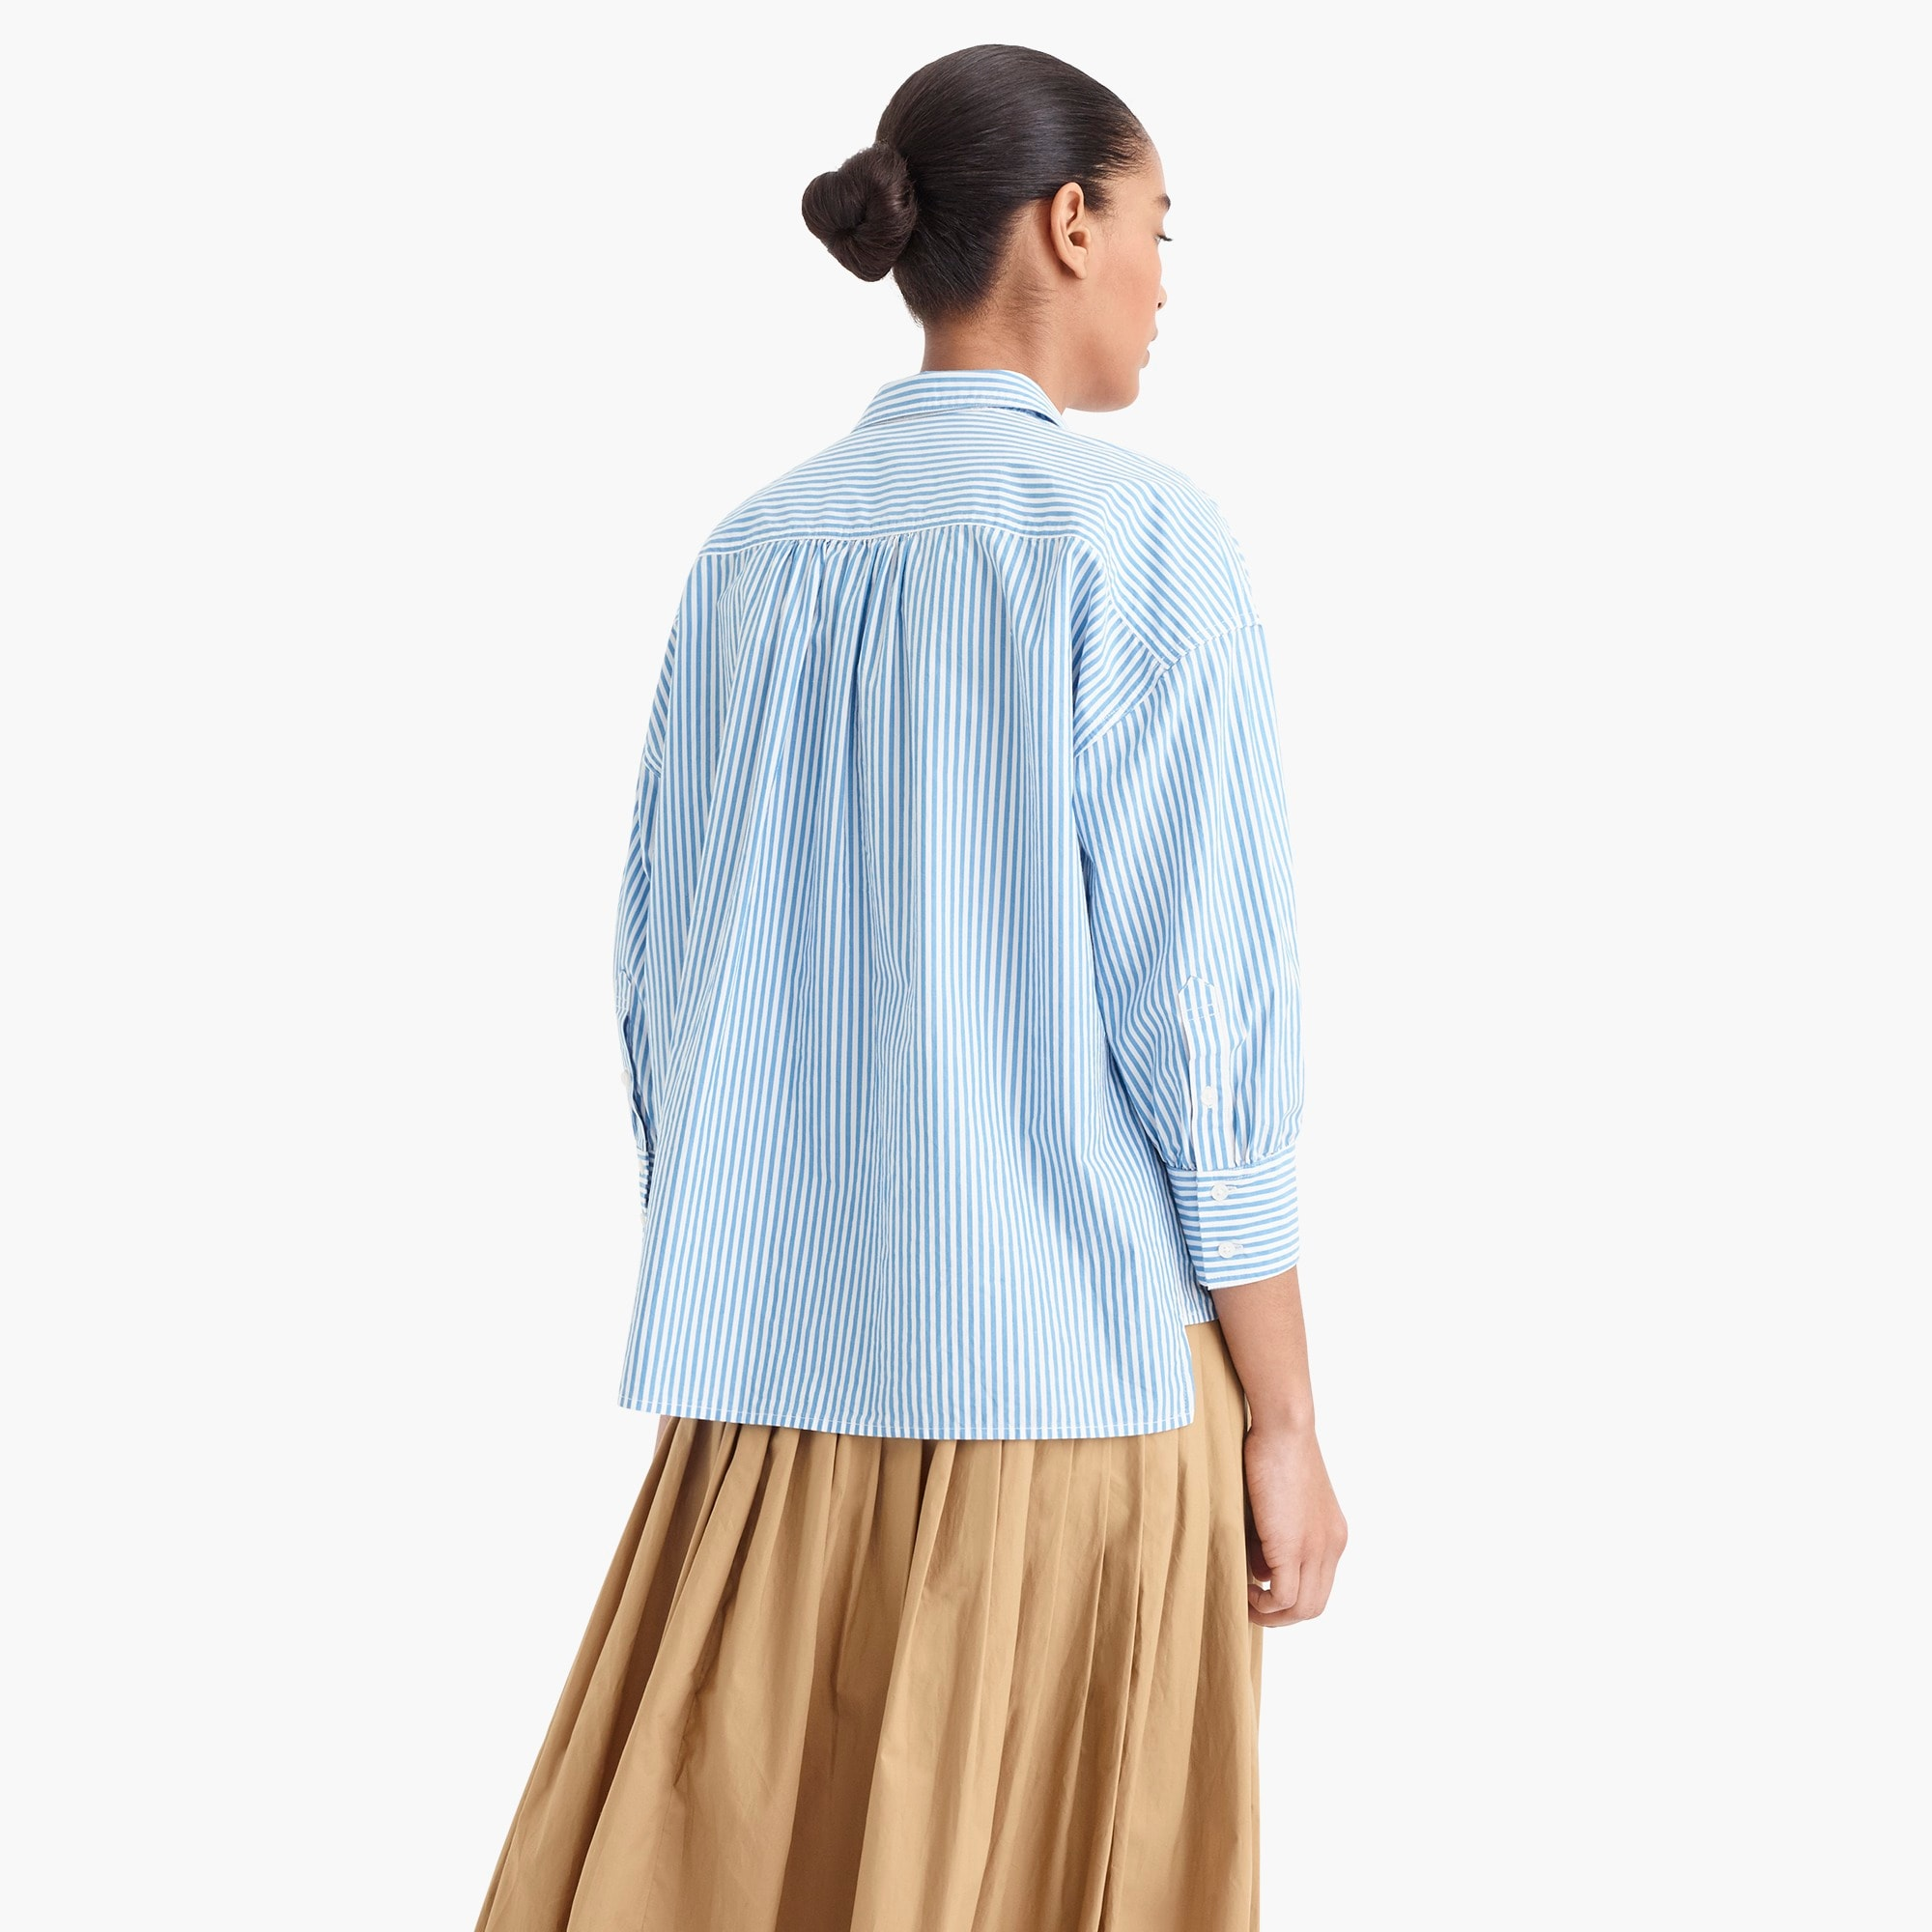 Oversized button-up in cotton poplin stripe